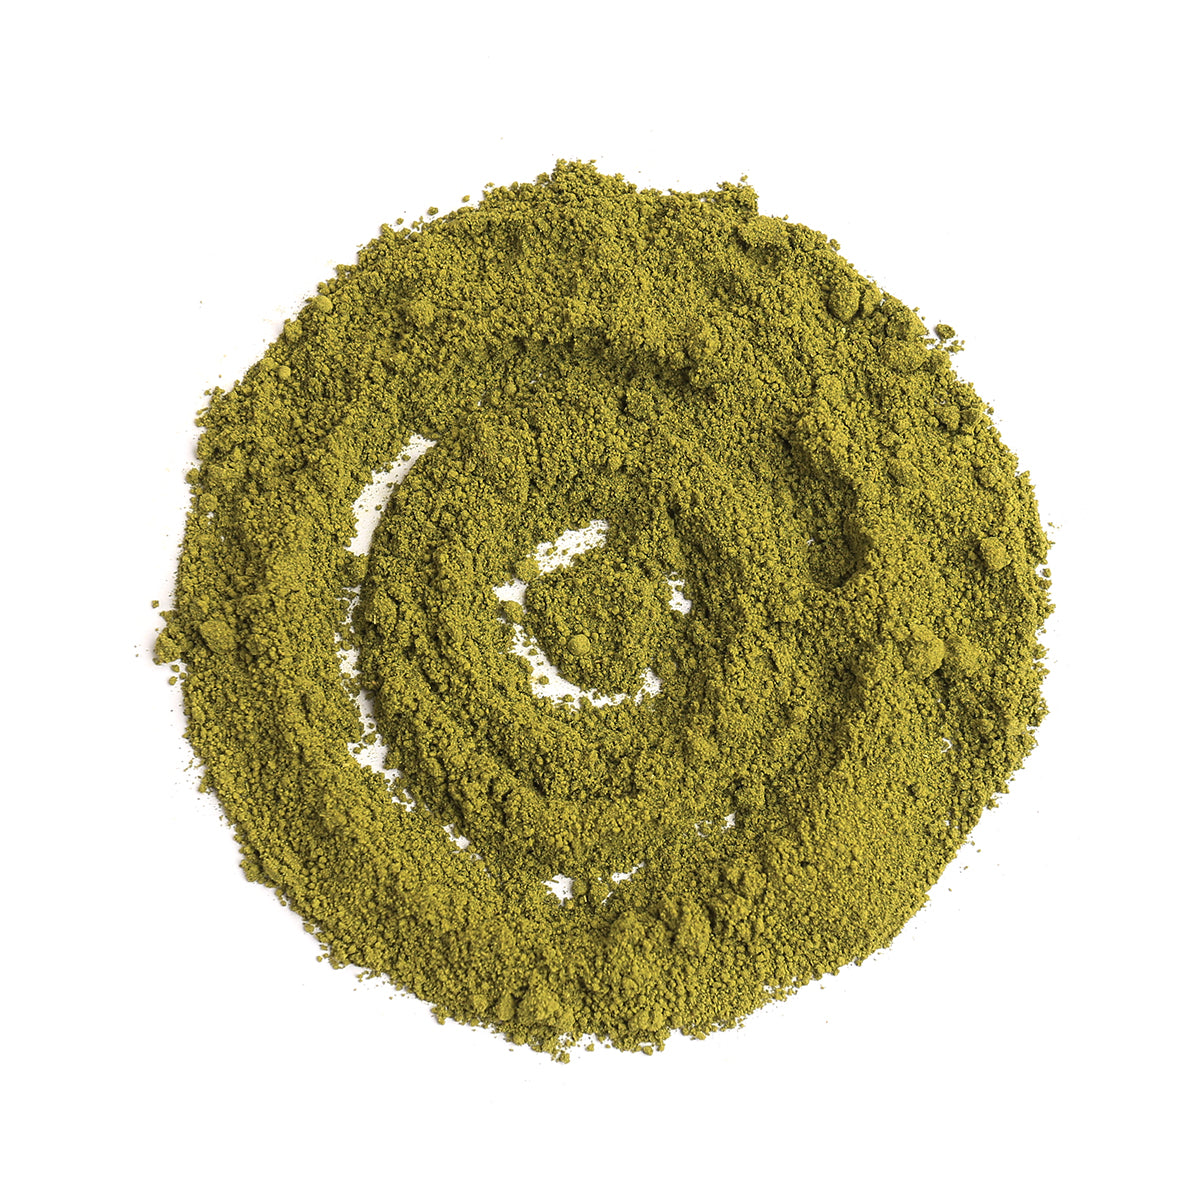 Matcha Tea Powder Benefits for Your Body and Your Mind  The Japanese have known it for centuries, and now the Western world is finally cottoning onto how matcha tea powder benefits both your body and your soul.  Matcha green tea happens to be top of the f